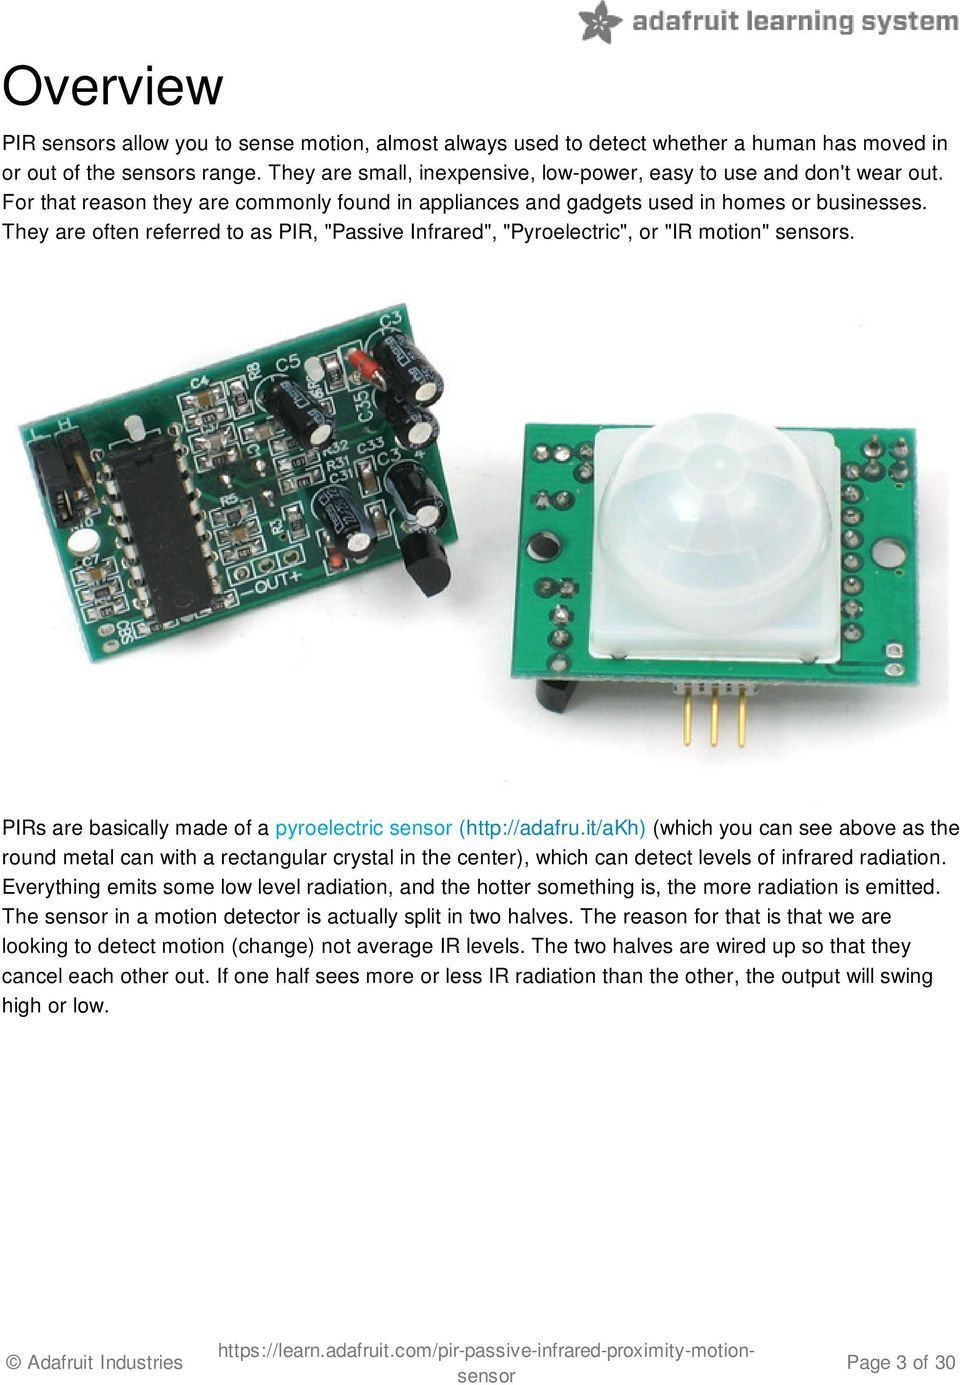 Pir Motion Sensor Created By Lady Ada Last Updated On 3258 Pm Microcontroller Based Diy Project For Power Saving Using They Are Often Referred To As Passive Infrared Pyroelectric Along With The Pyroelectic